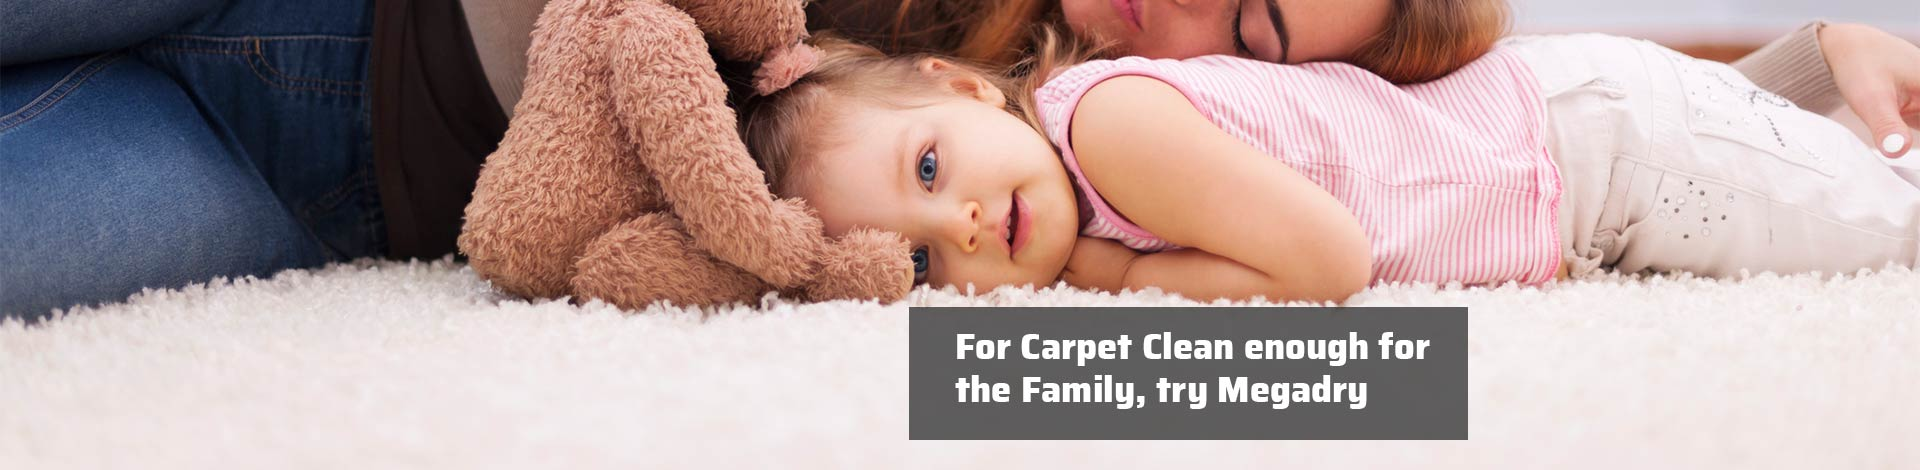 For Carpet Clean enough for the Family try Megadry